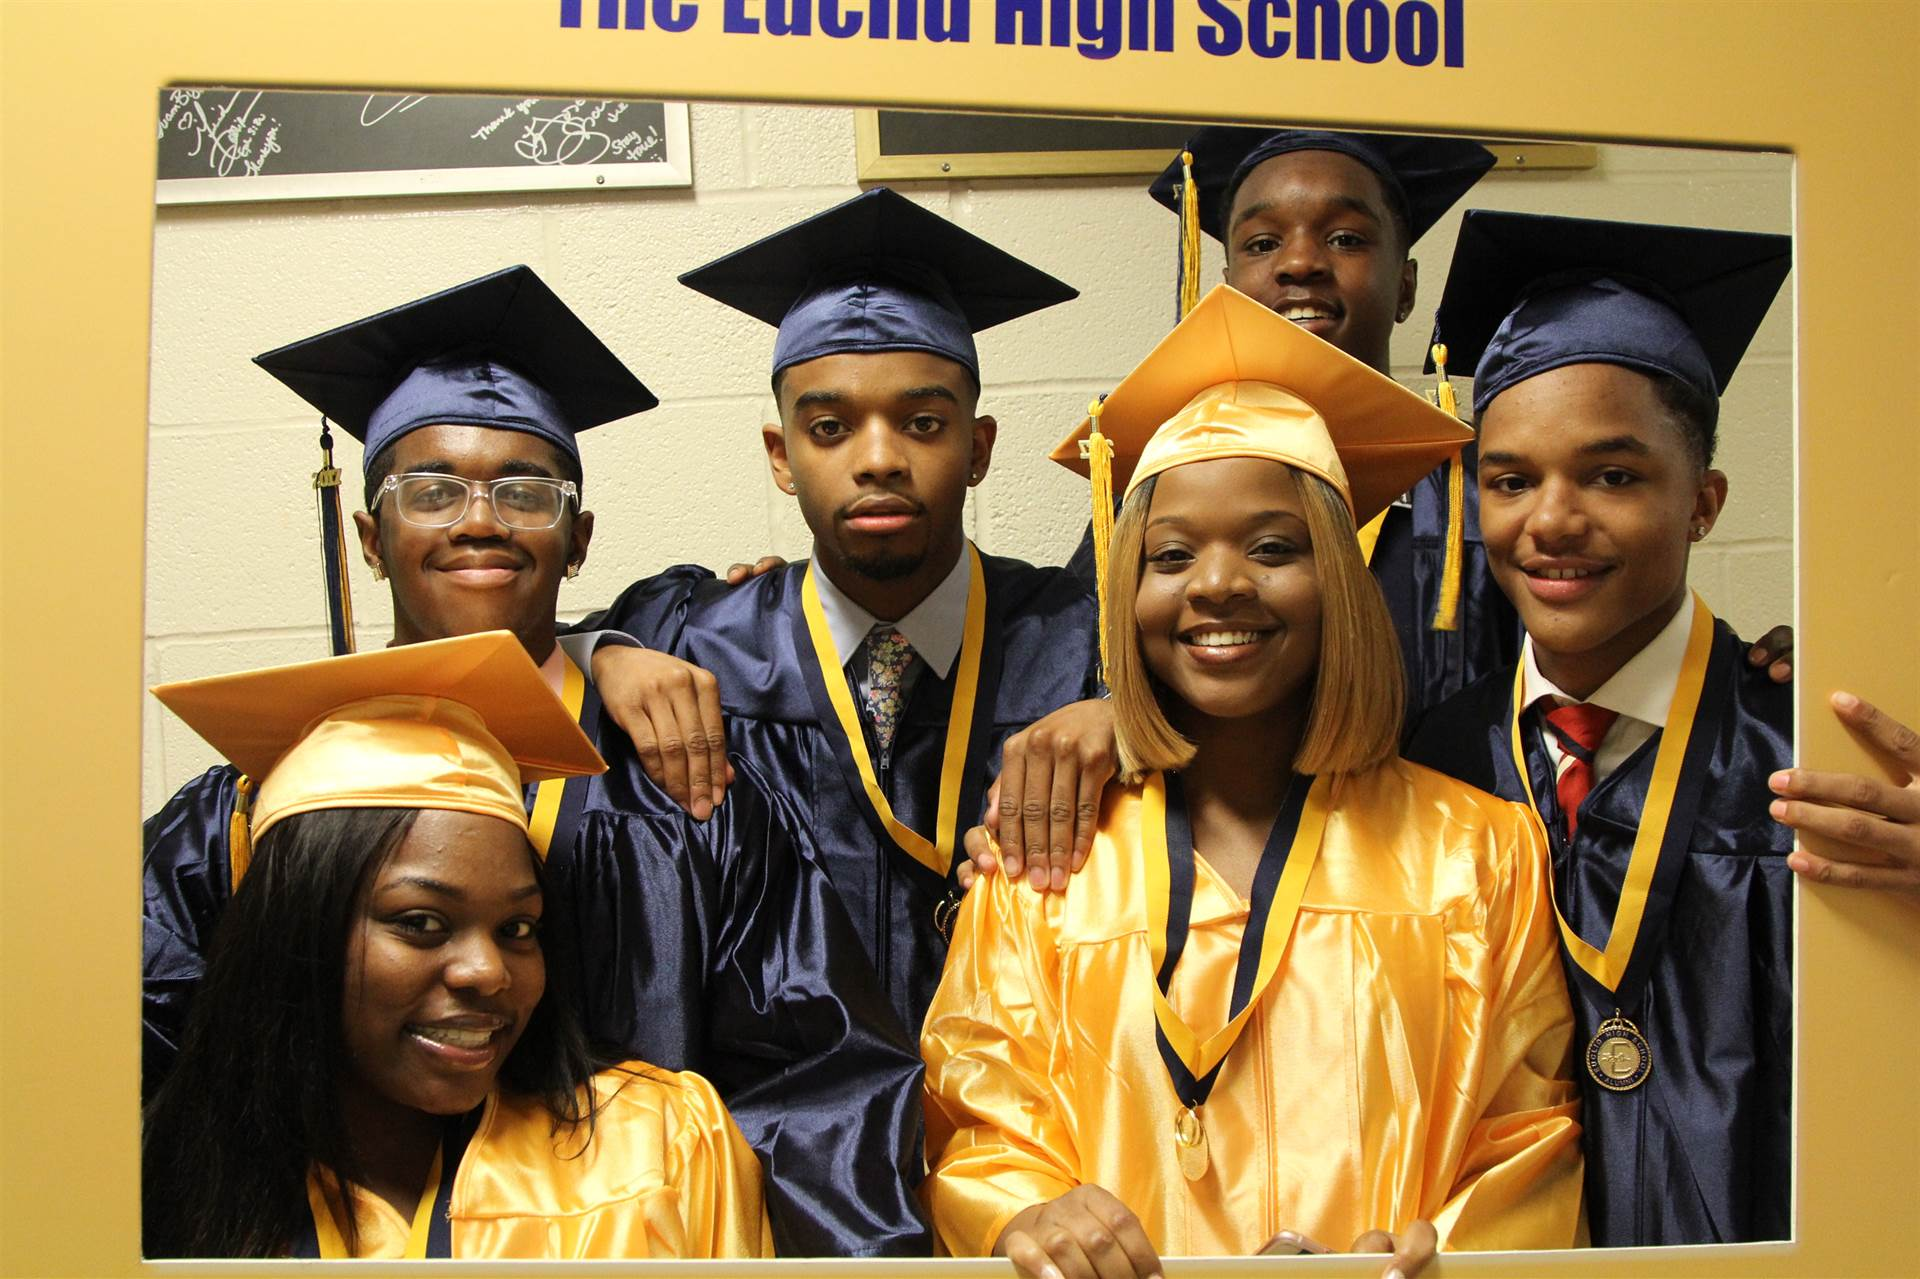 Pre-commencement Ceremony for Euclid High School Seniors